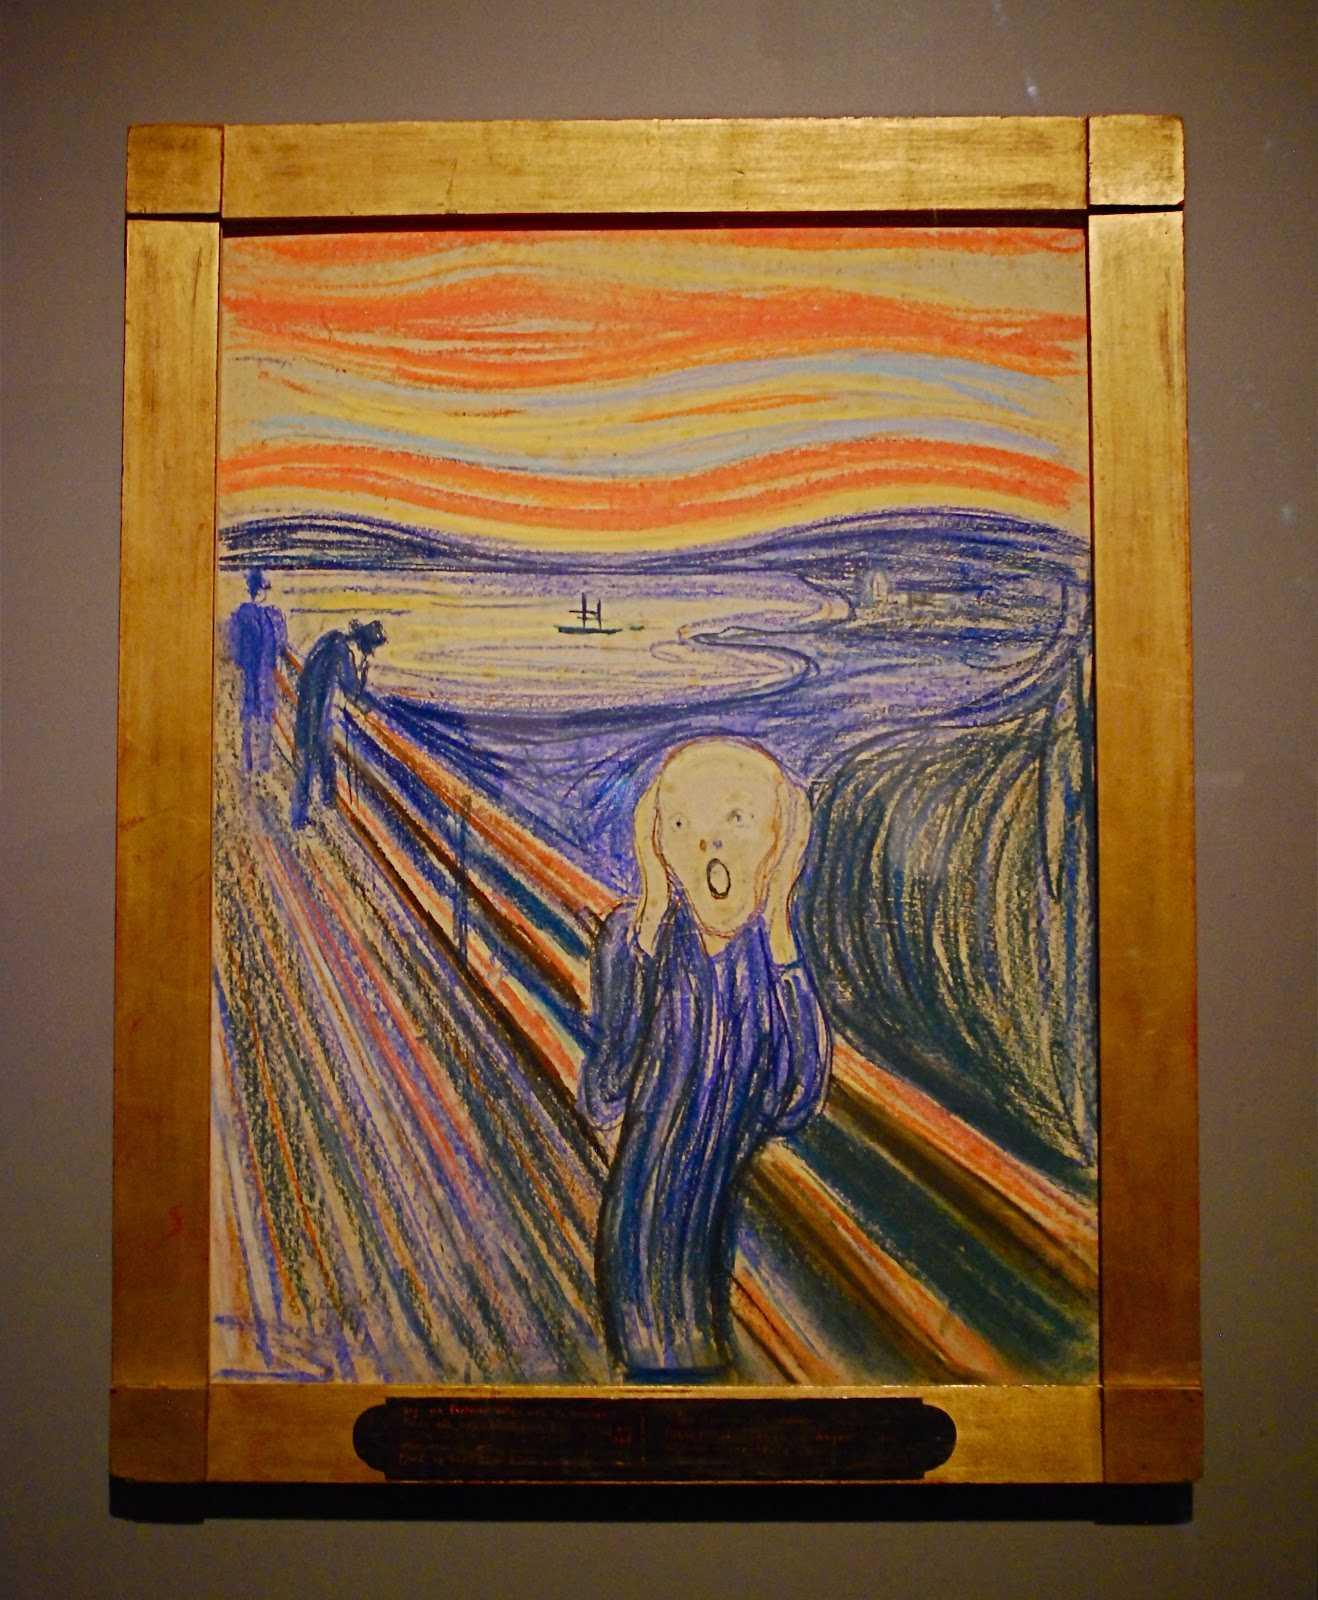 Cuadros Moma The Scream De Munch Se Expone En El Moma Historias De